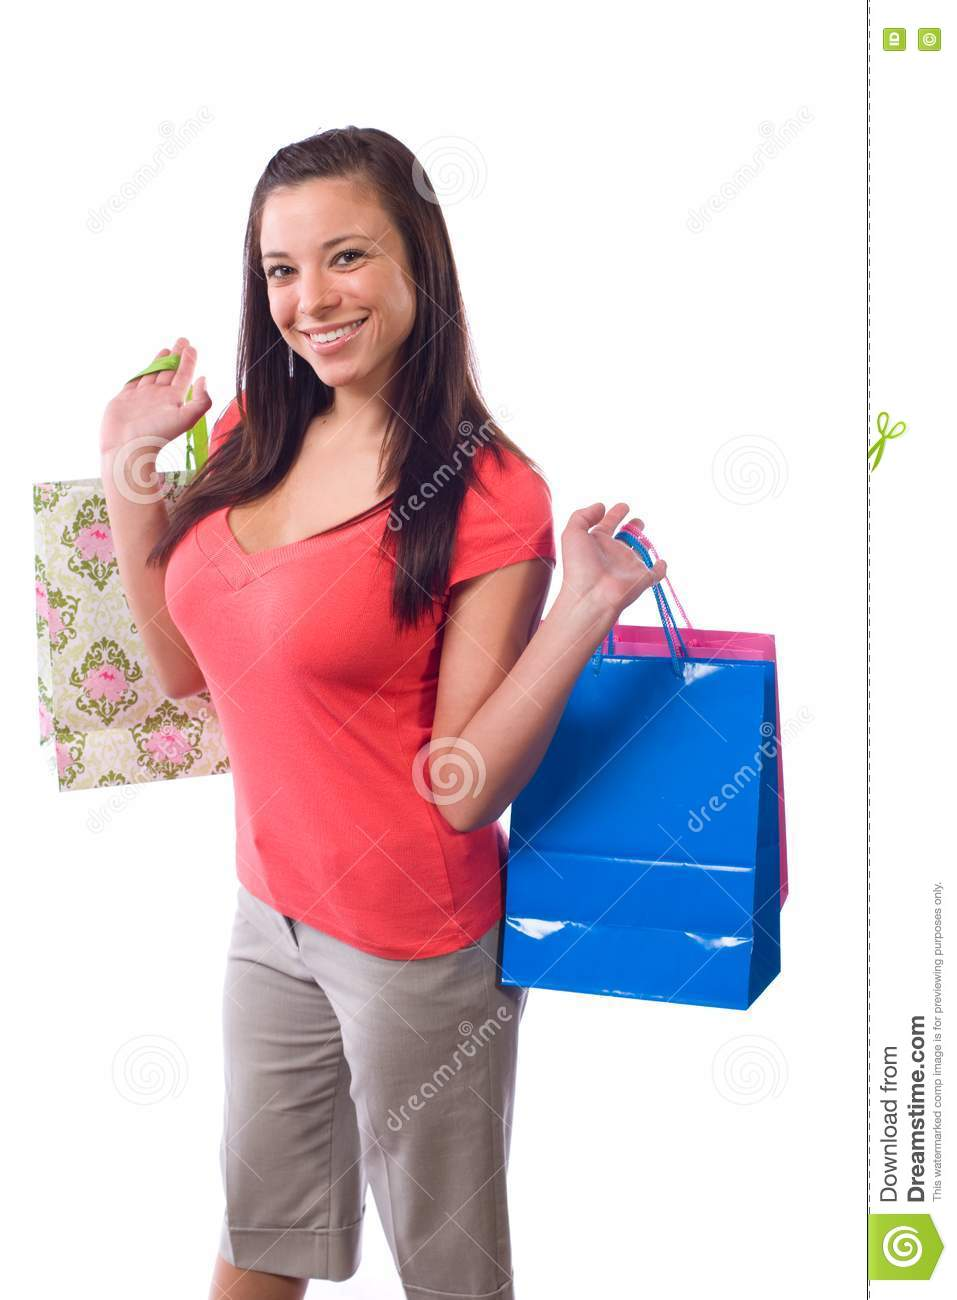 Lastest Woman Holding Paper Shopping Bag Stock Image - Image 34979189